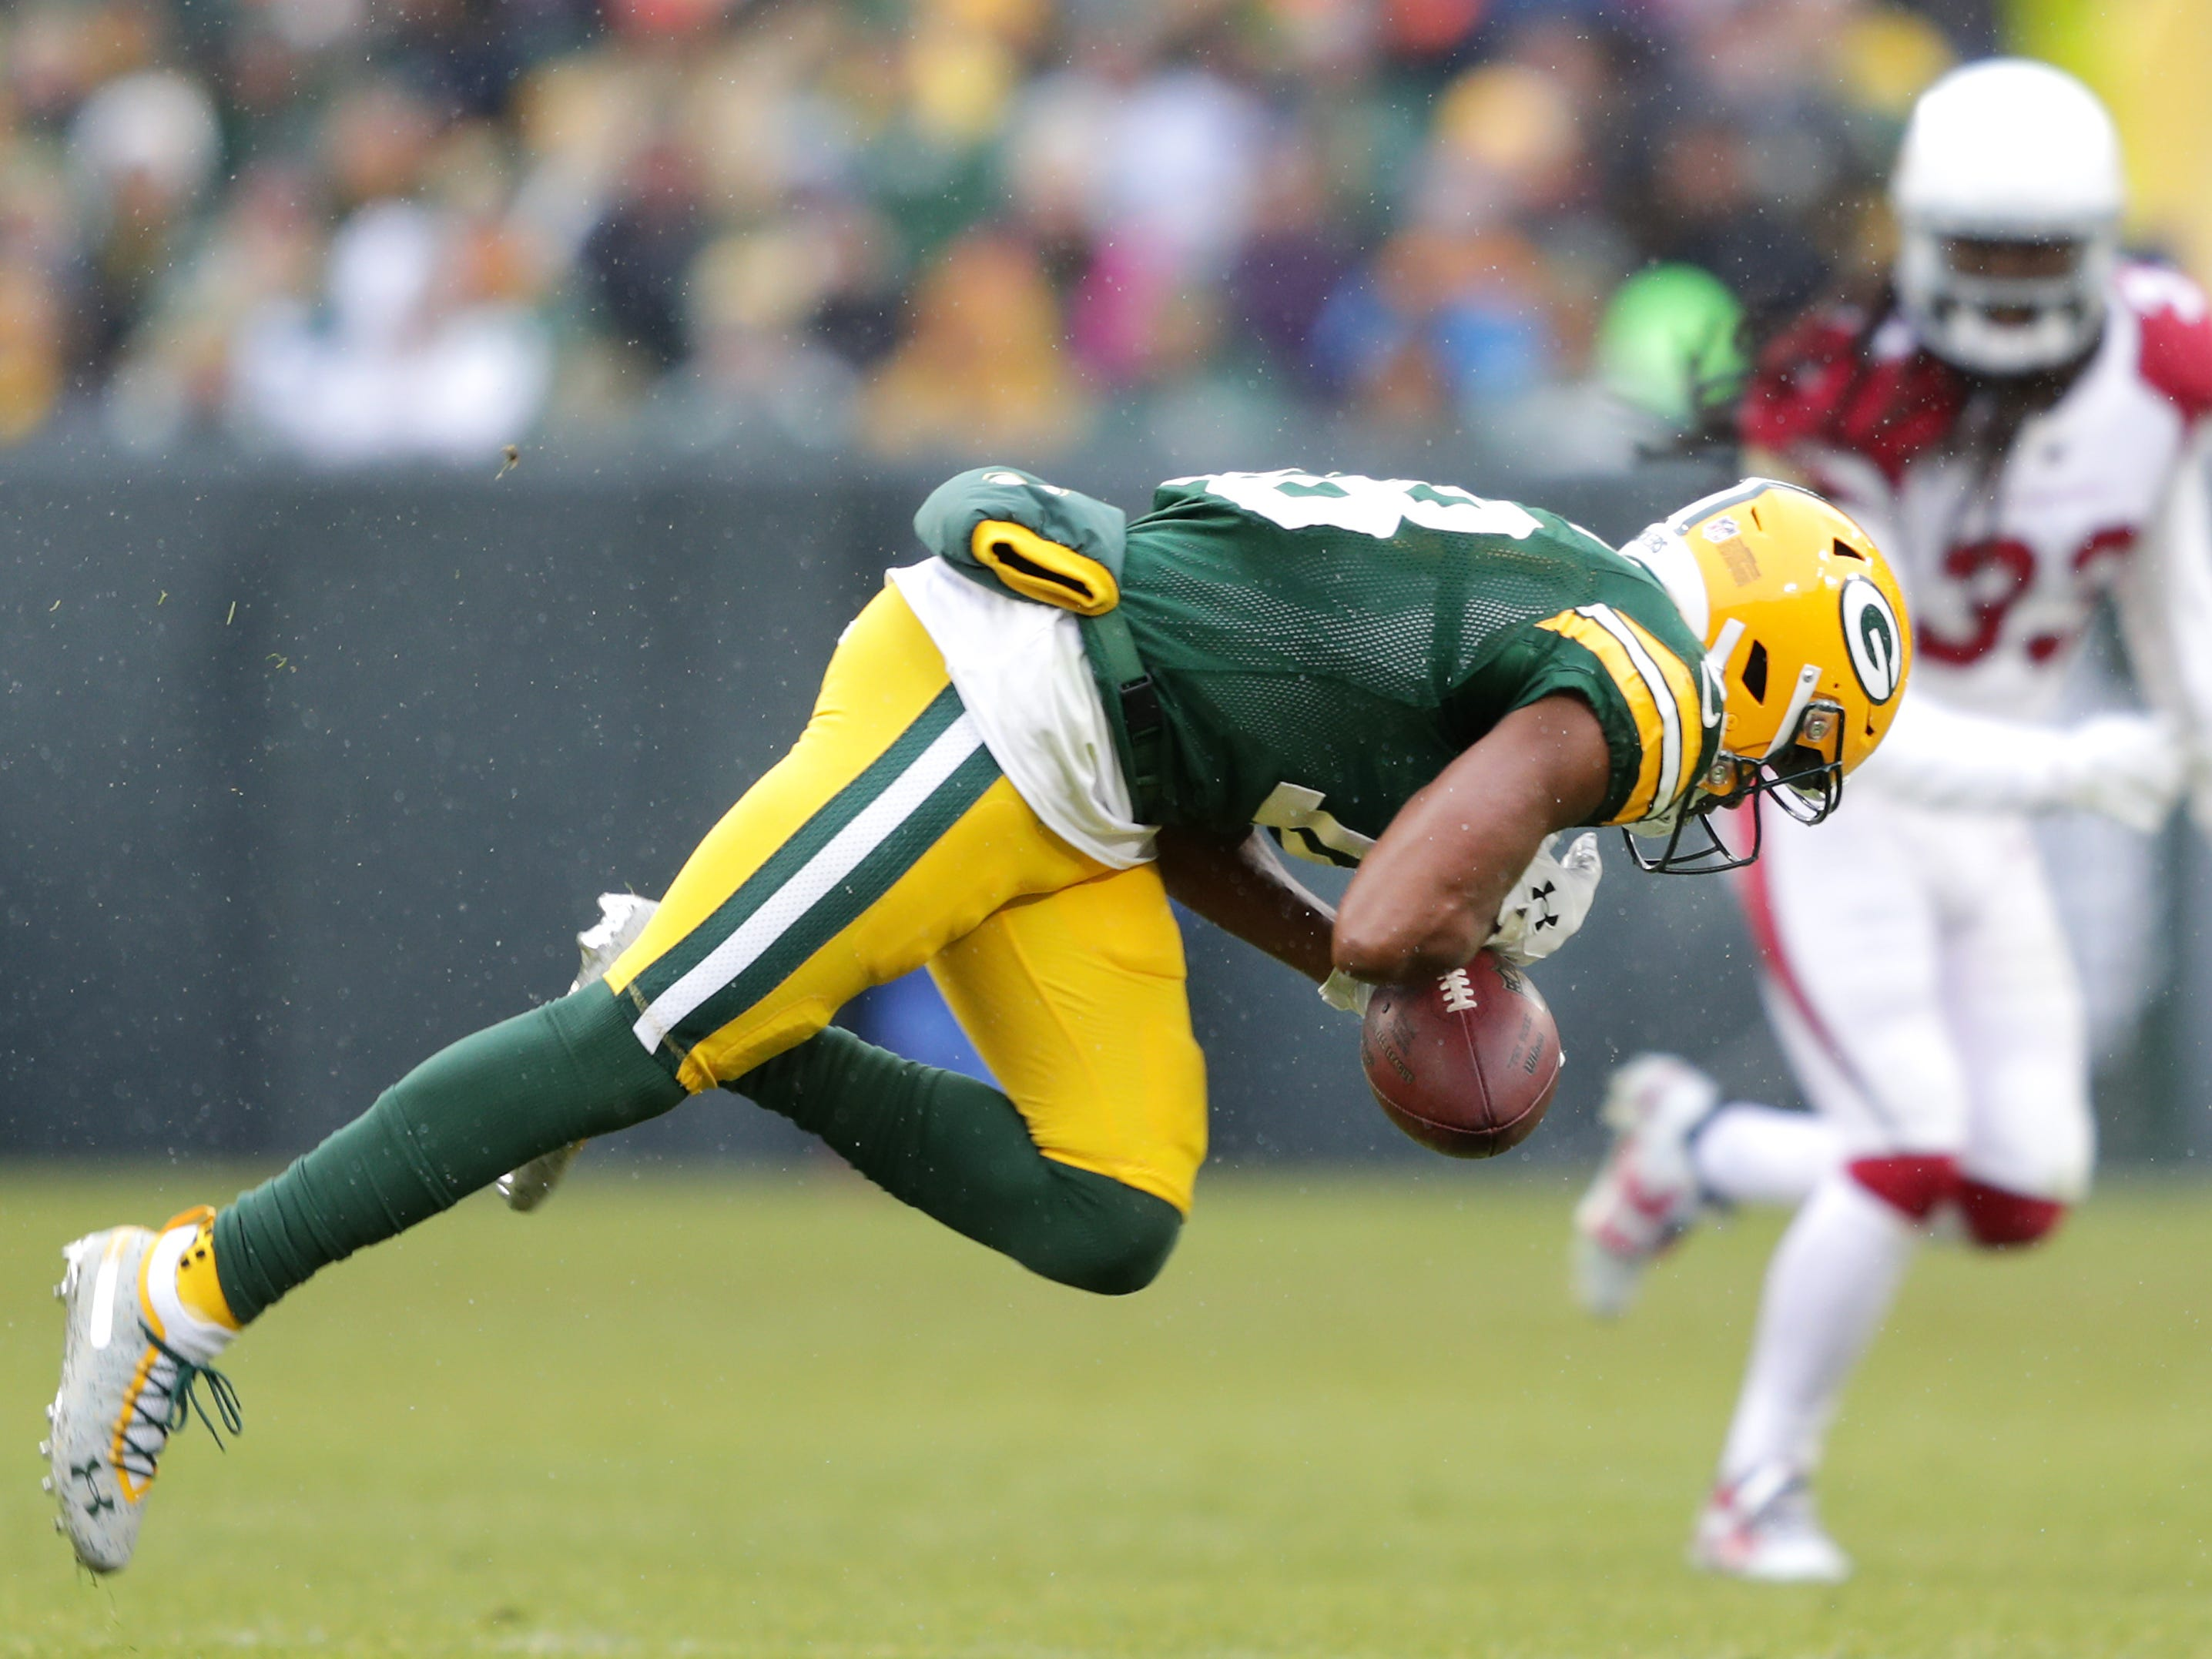 Green Bay Packers wide receiver Randall Cobb looses control of a third quarter pass against the Arizona Cardinals during their football game on Sunday, December 2, 2018, at Lambeau Field in Green Bay, Wis. Arizona defeated Green Bay 20 to 17. Wm. Glasheen/USA TODAY NETWORK-Wisconsin.